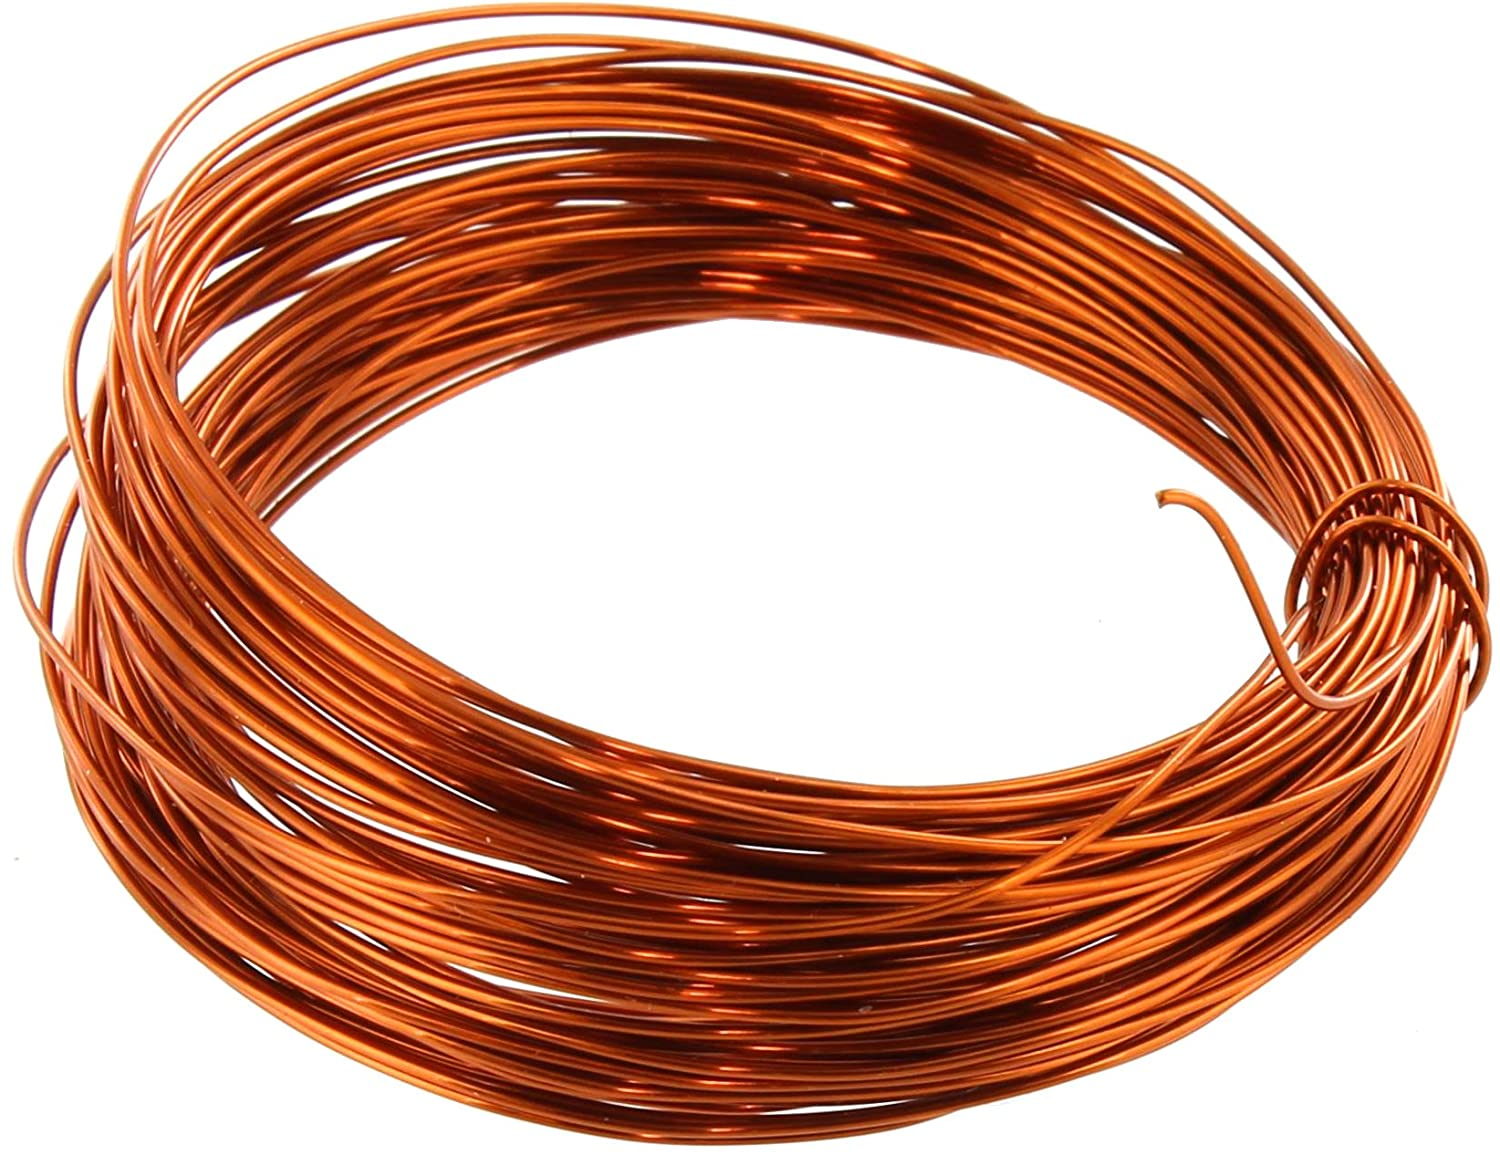 Enamelled Copper Wire - 0.5mm 10m: Amazon.com: Industrial ... on copper enclosures, copper connectors, copper doors, copper ground wire, copper wire loop, copper trim, copper fasteners, copper building, copper electrical wire, copper hardware, copper appliances, copper coins, copper siding, copper design, copper painting, copper cables, copper sheet metal, copper diagram, copper circuit board, copper socket,